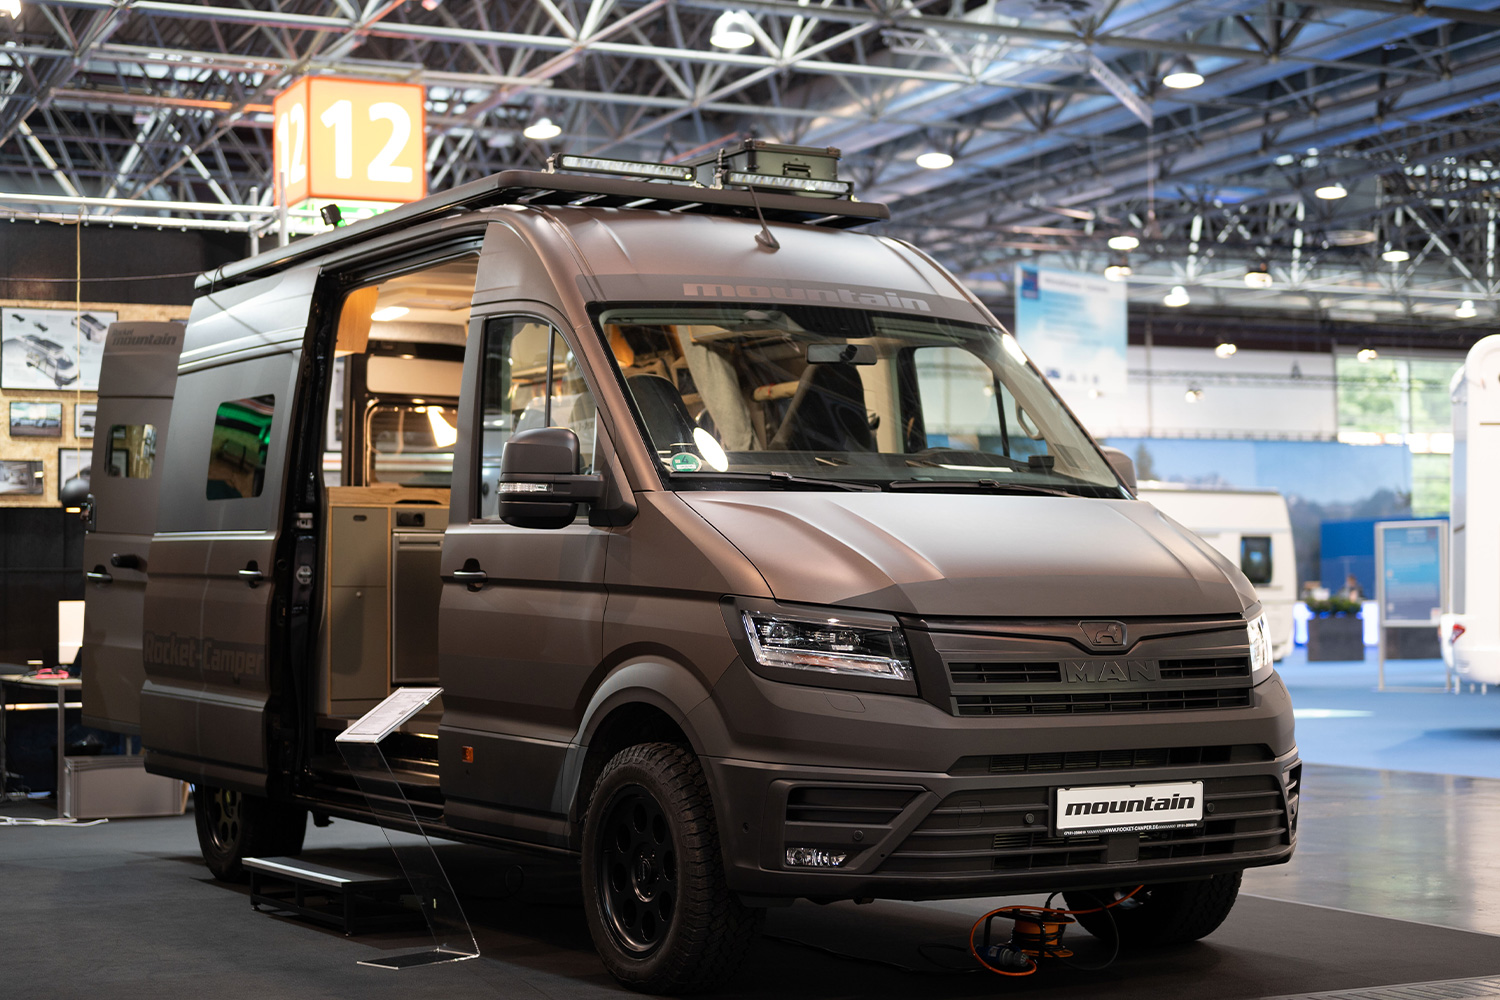 Rocket Camper jumps over to the MAN TGE 4x4 from the Fiat Ducato to create the more rugged, off-road-ready Mountain camper van